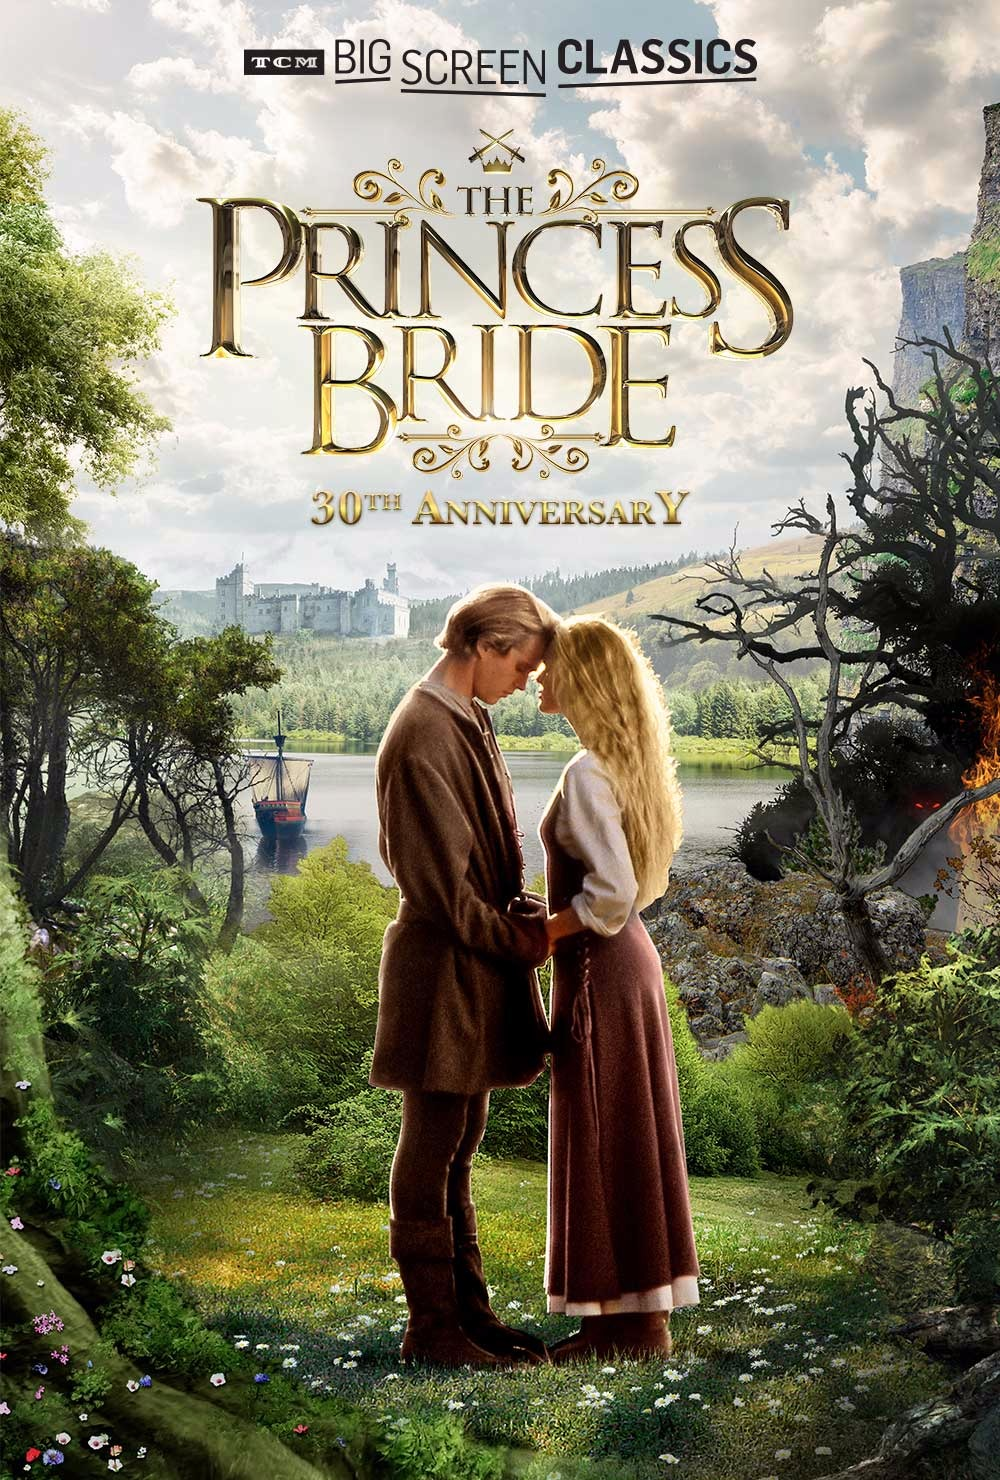 TCM Presents: The Princess Bride A Special 30th Anniversary Event